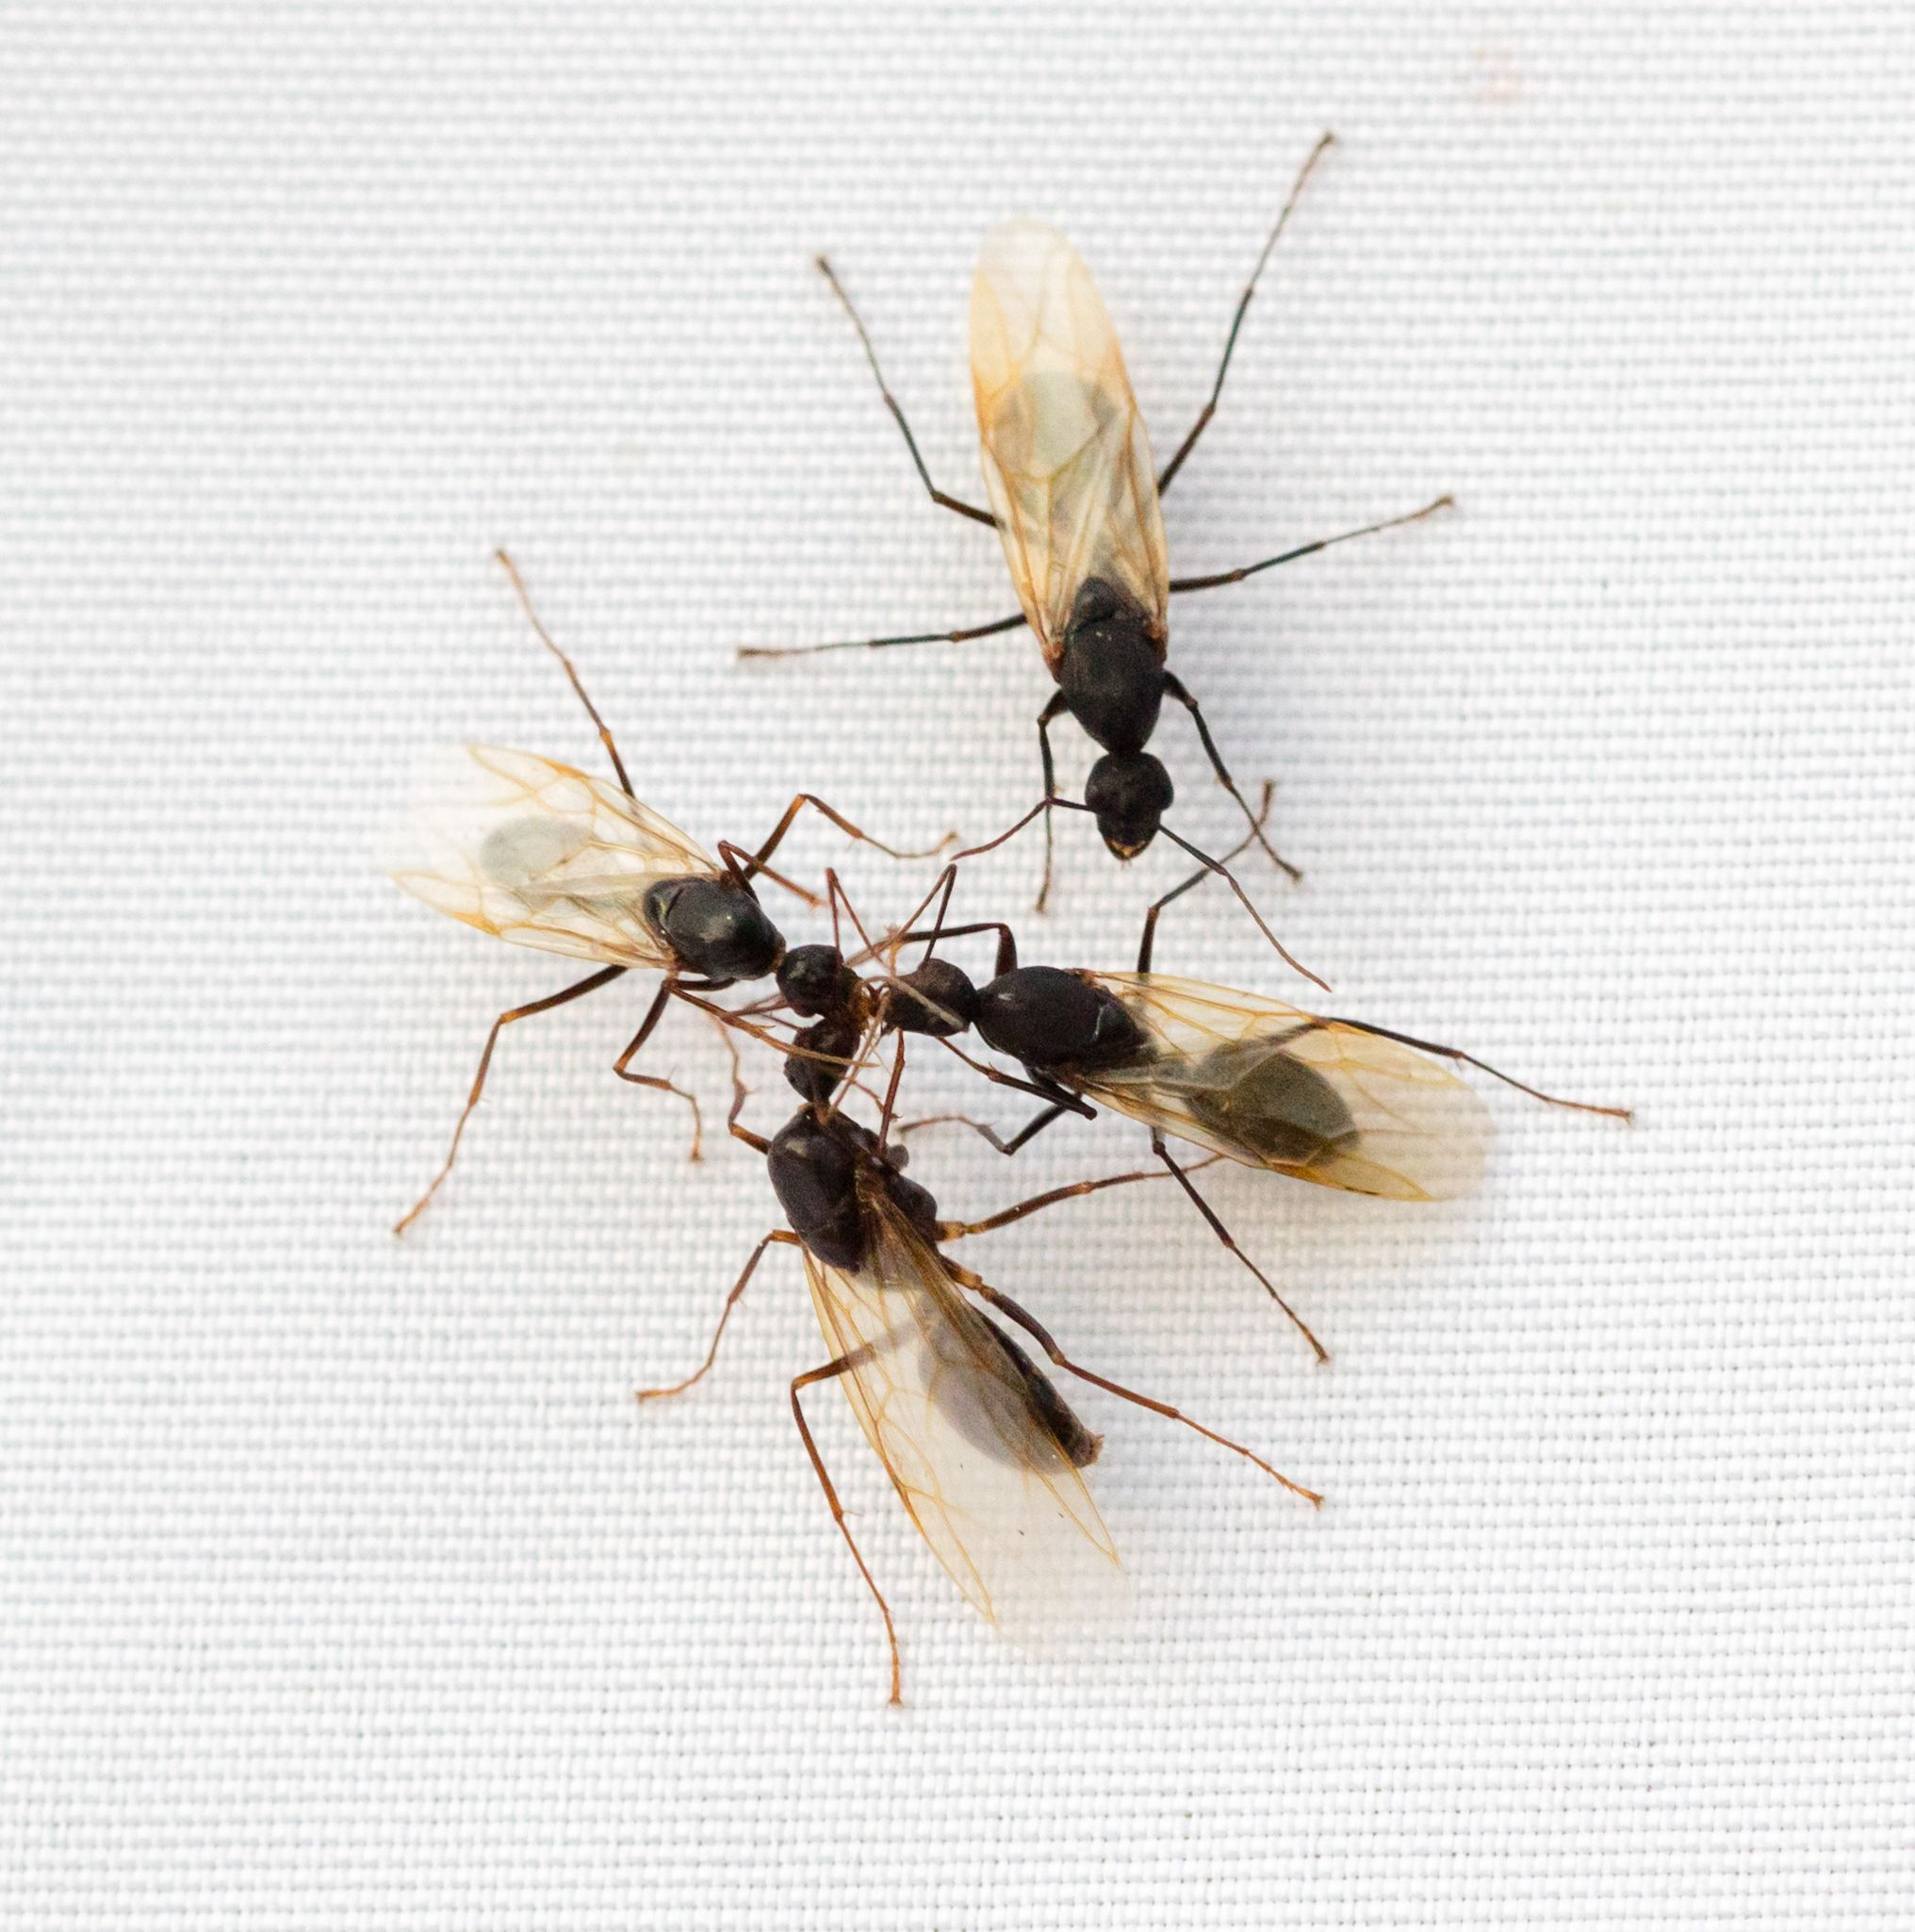 Winged Carpenter Ants Flying Ants In The Home Are Rarely A Good Sign And This Is Particularly True If T Ants With Wings Carpenter Ants With Wings Flying Ants